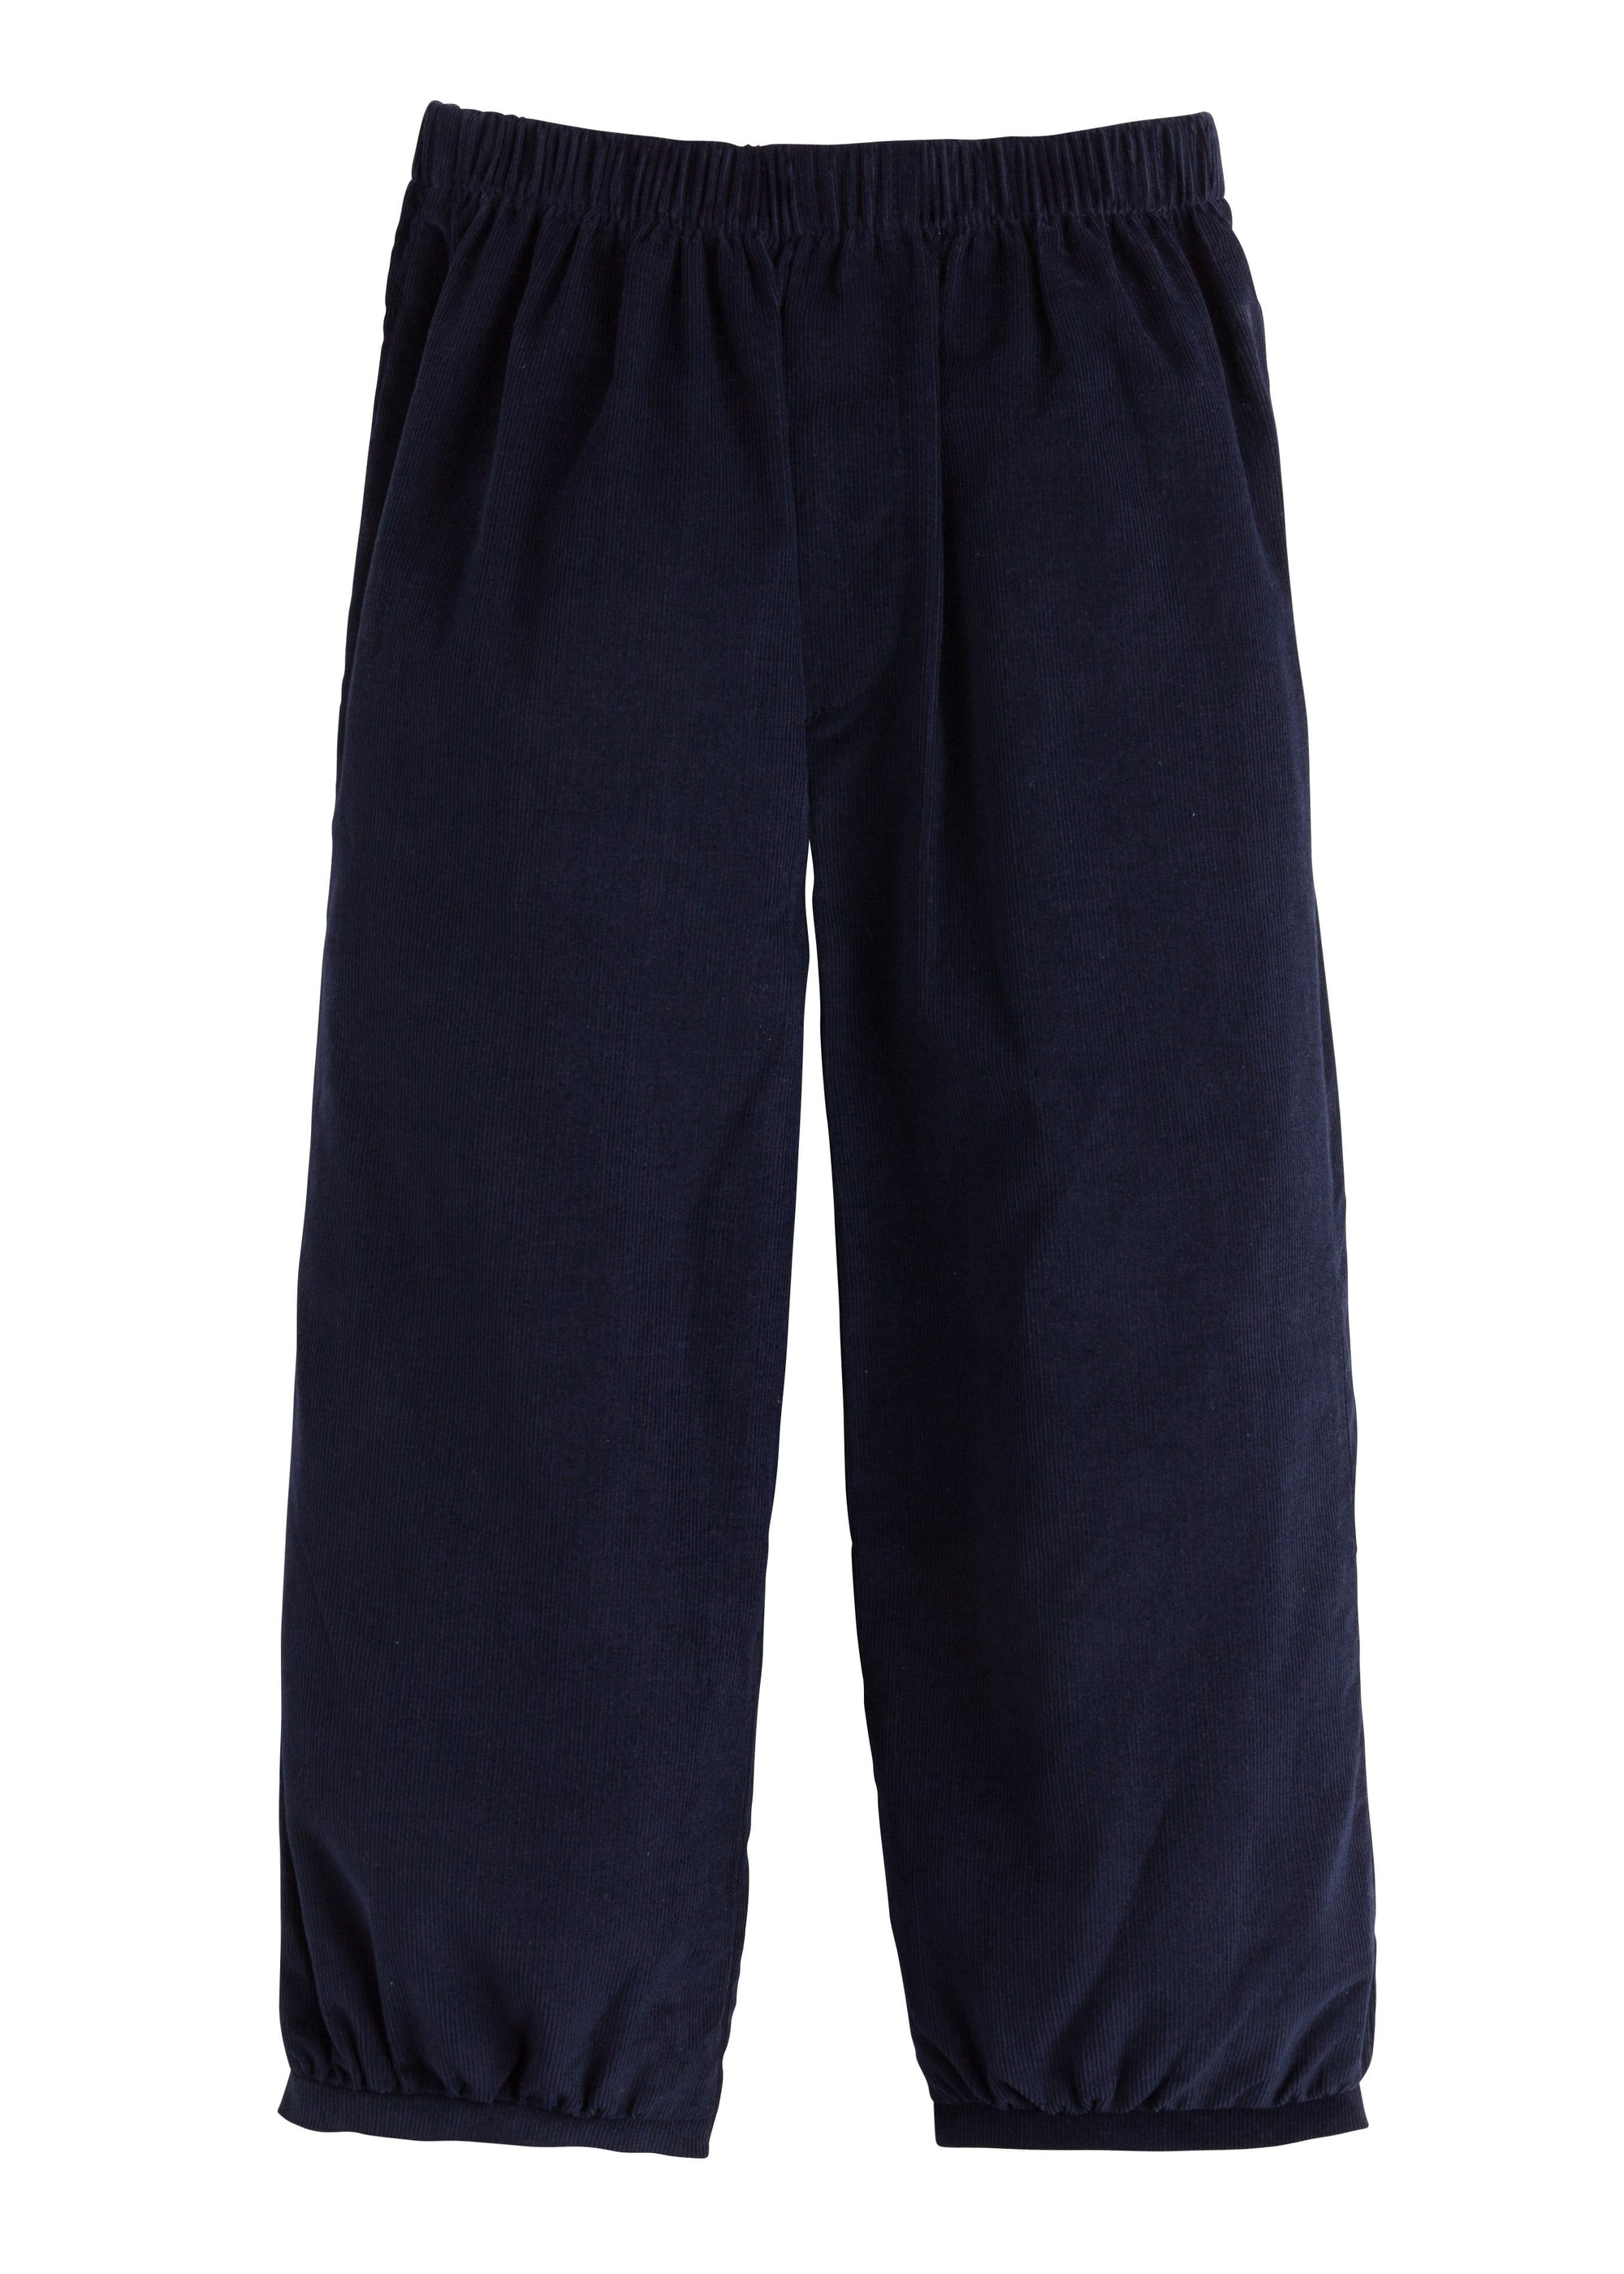 Banded Pull on Pant - Navy